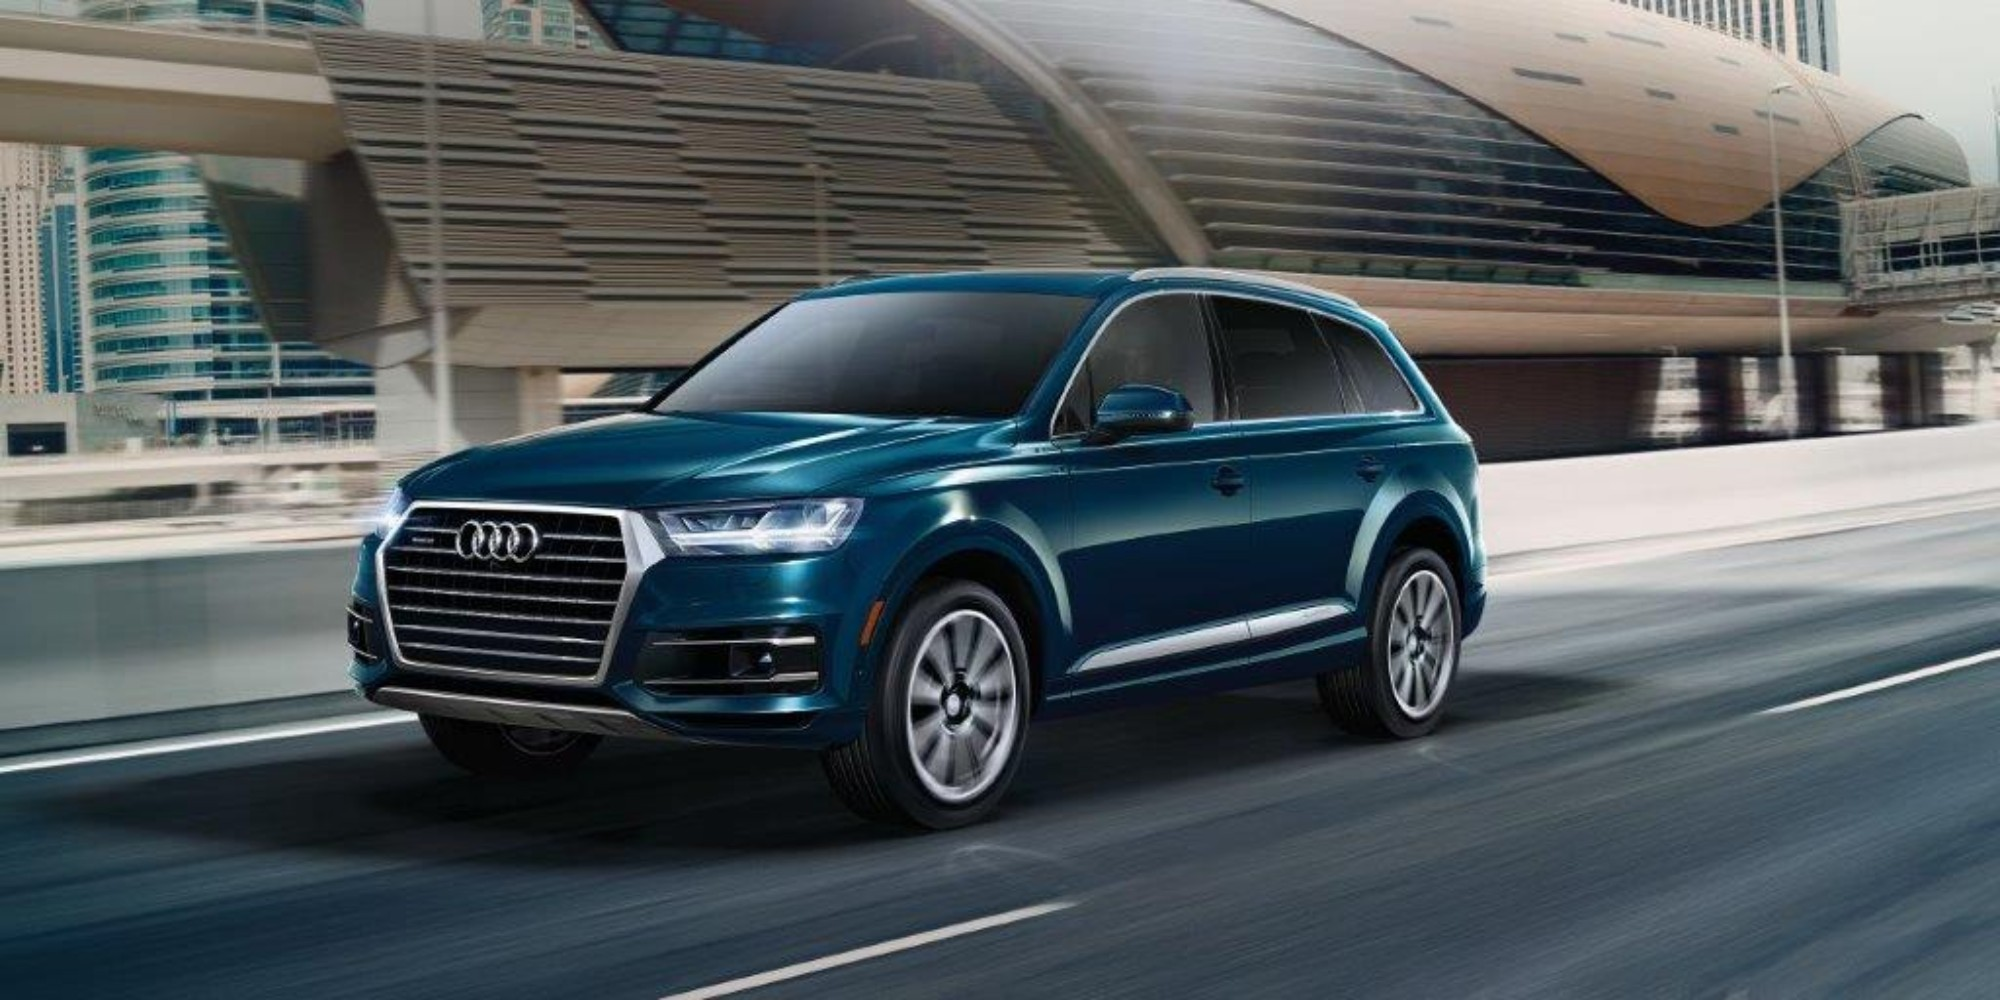 Best 3 Row Luxury Suv >> 2019 Audi Q7 Named 2019 Best Luxury 3 Row Suv For Families By U S